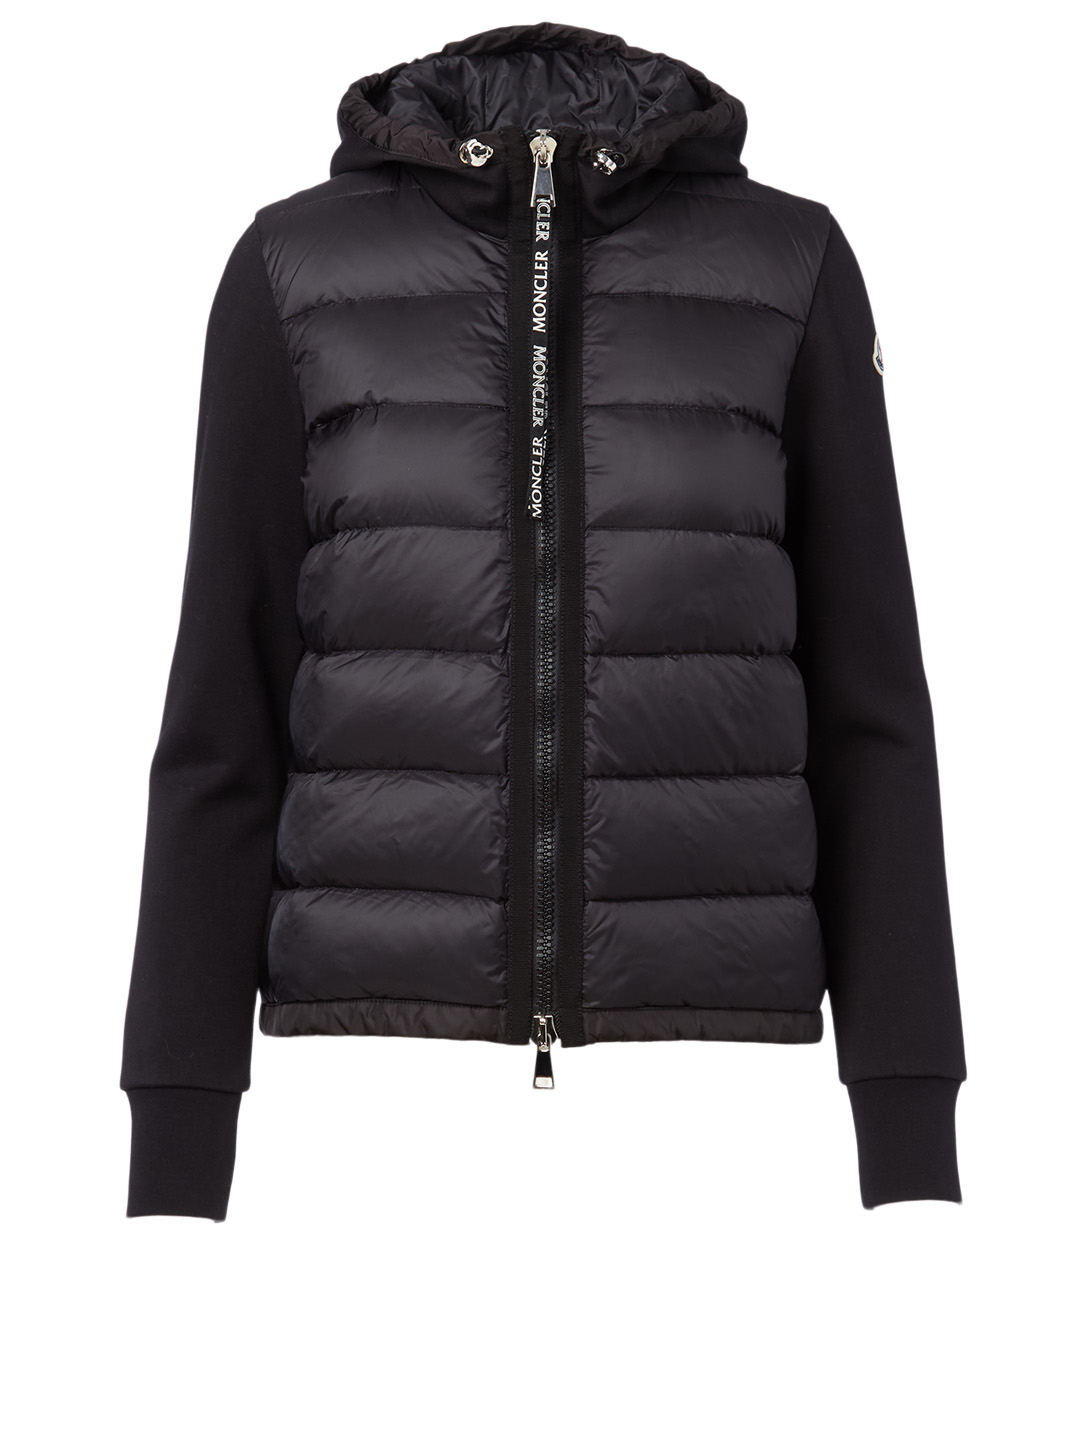 MONCLER Quilted Zip Cardigan Women's Black